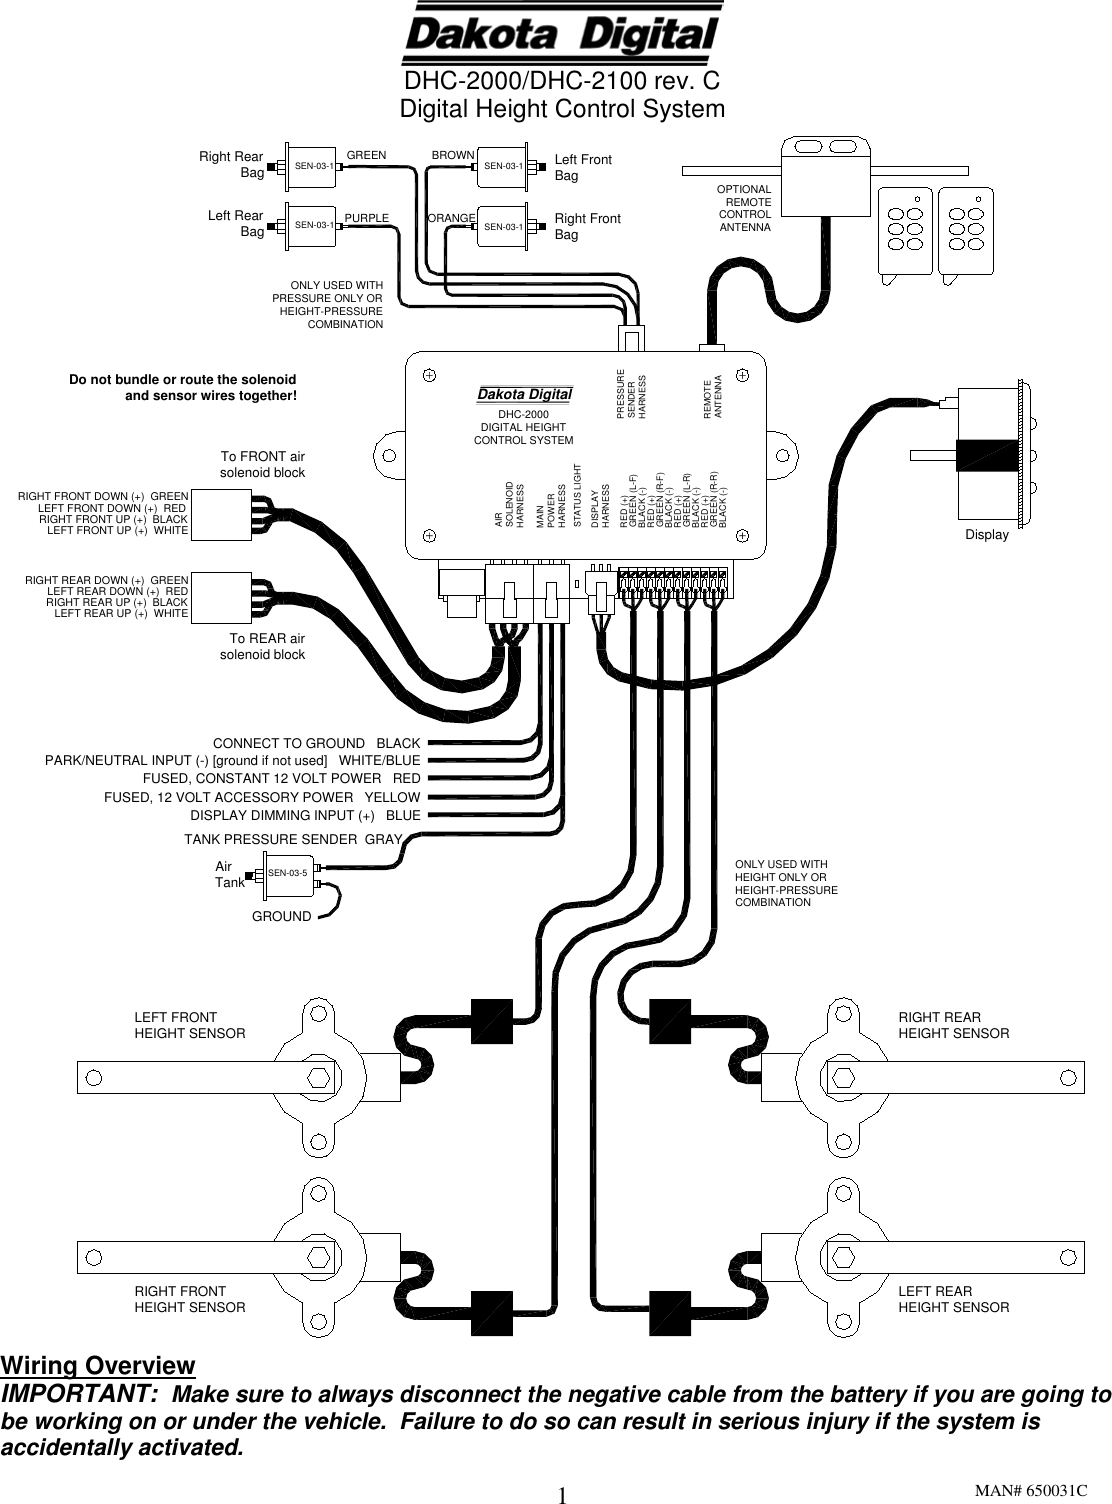 Wiring Diagram Dakotum Digital Wiring Diagram